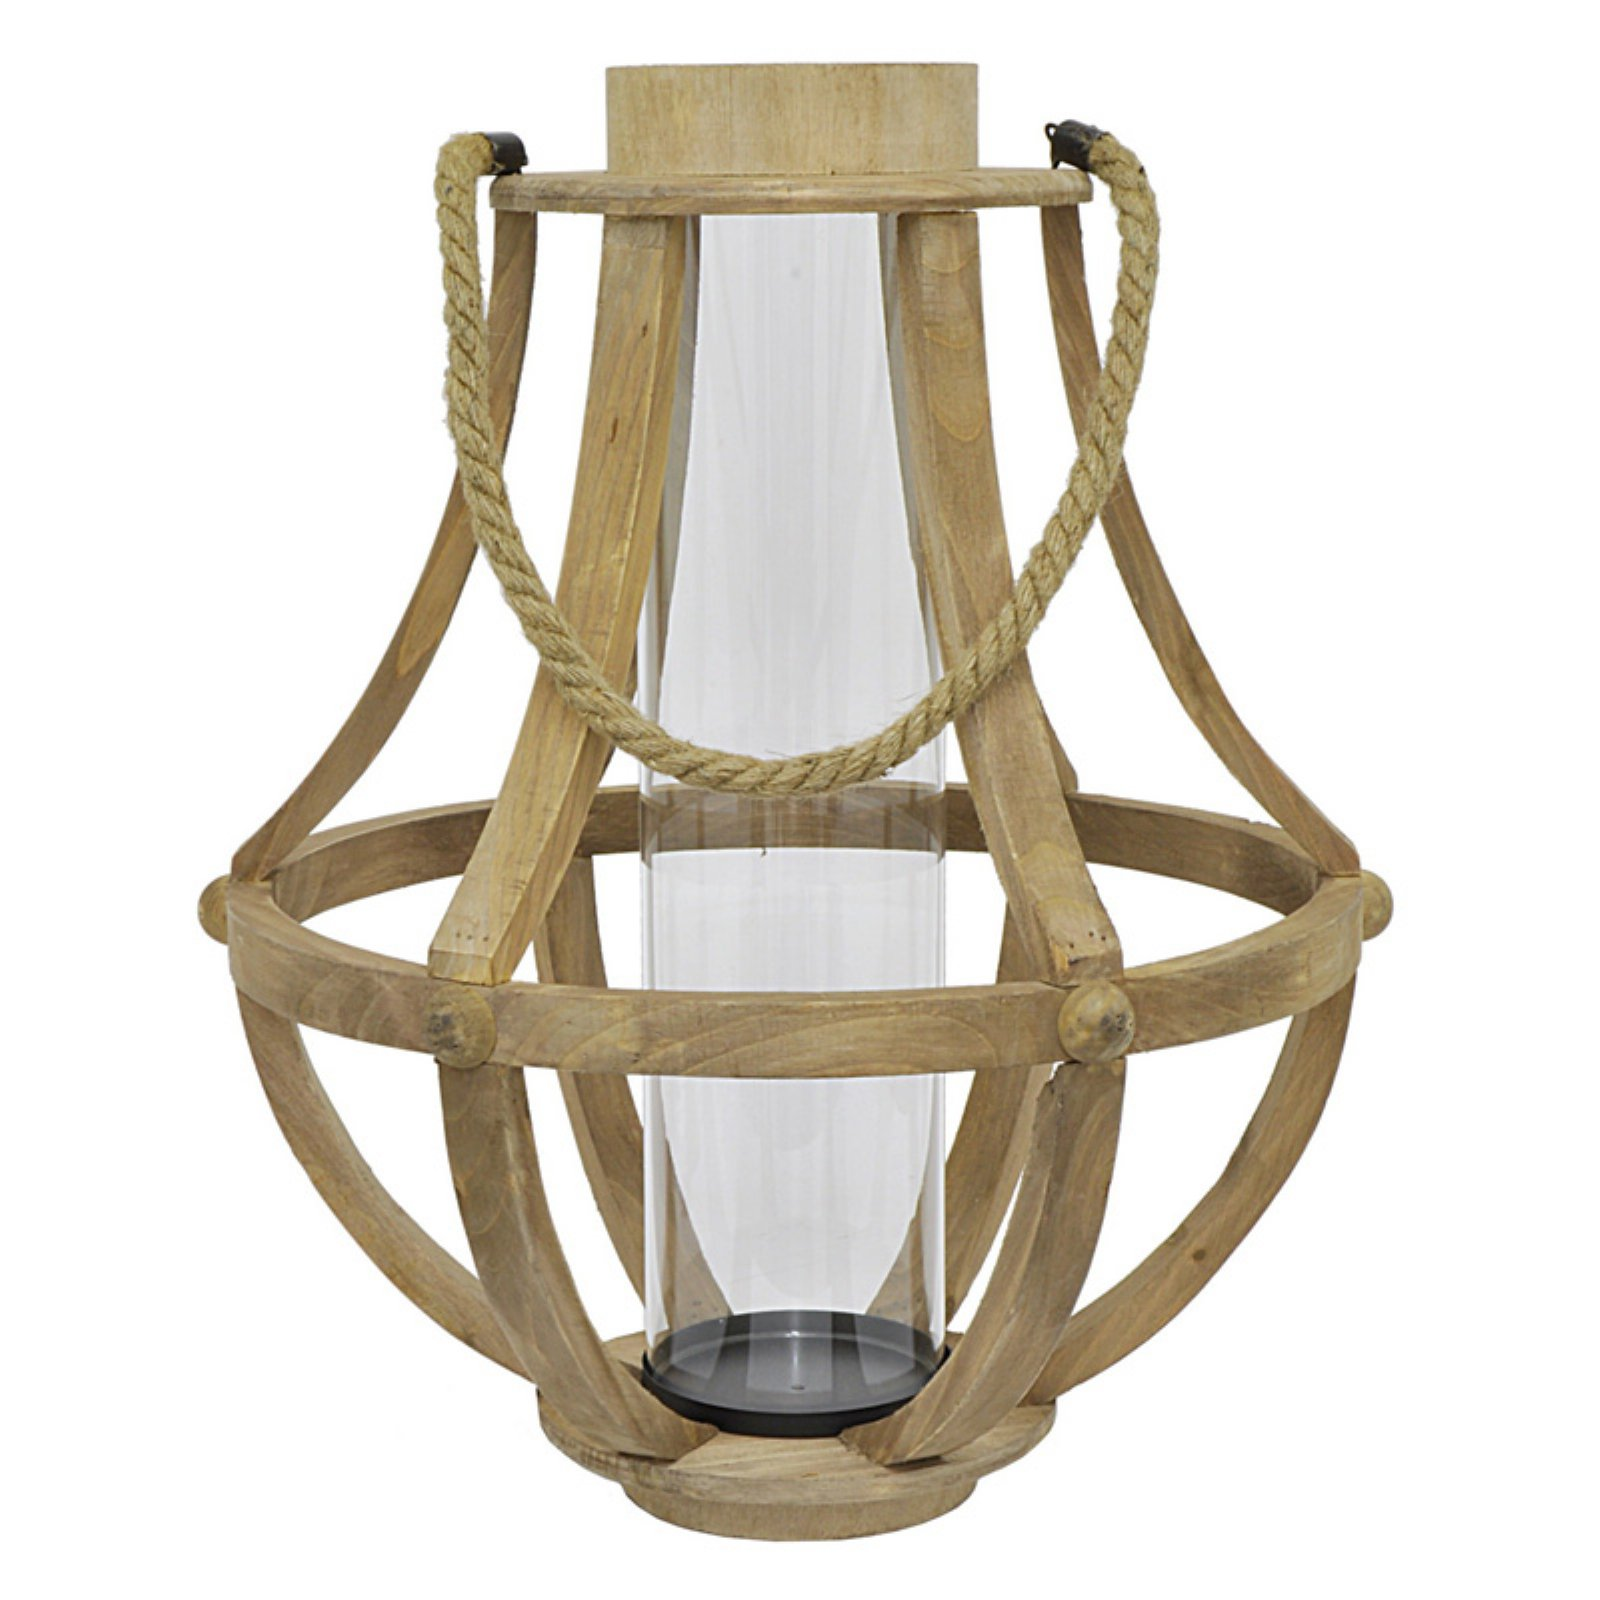 Three Hands Wood and Glass Lantern